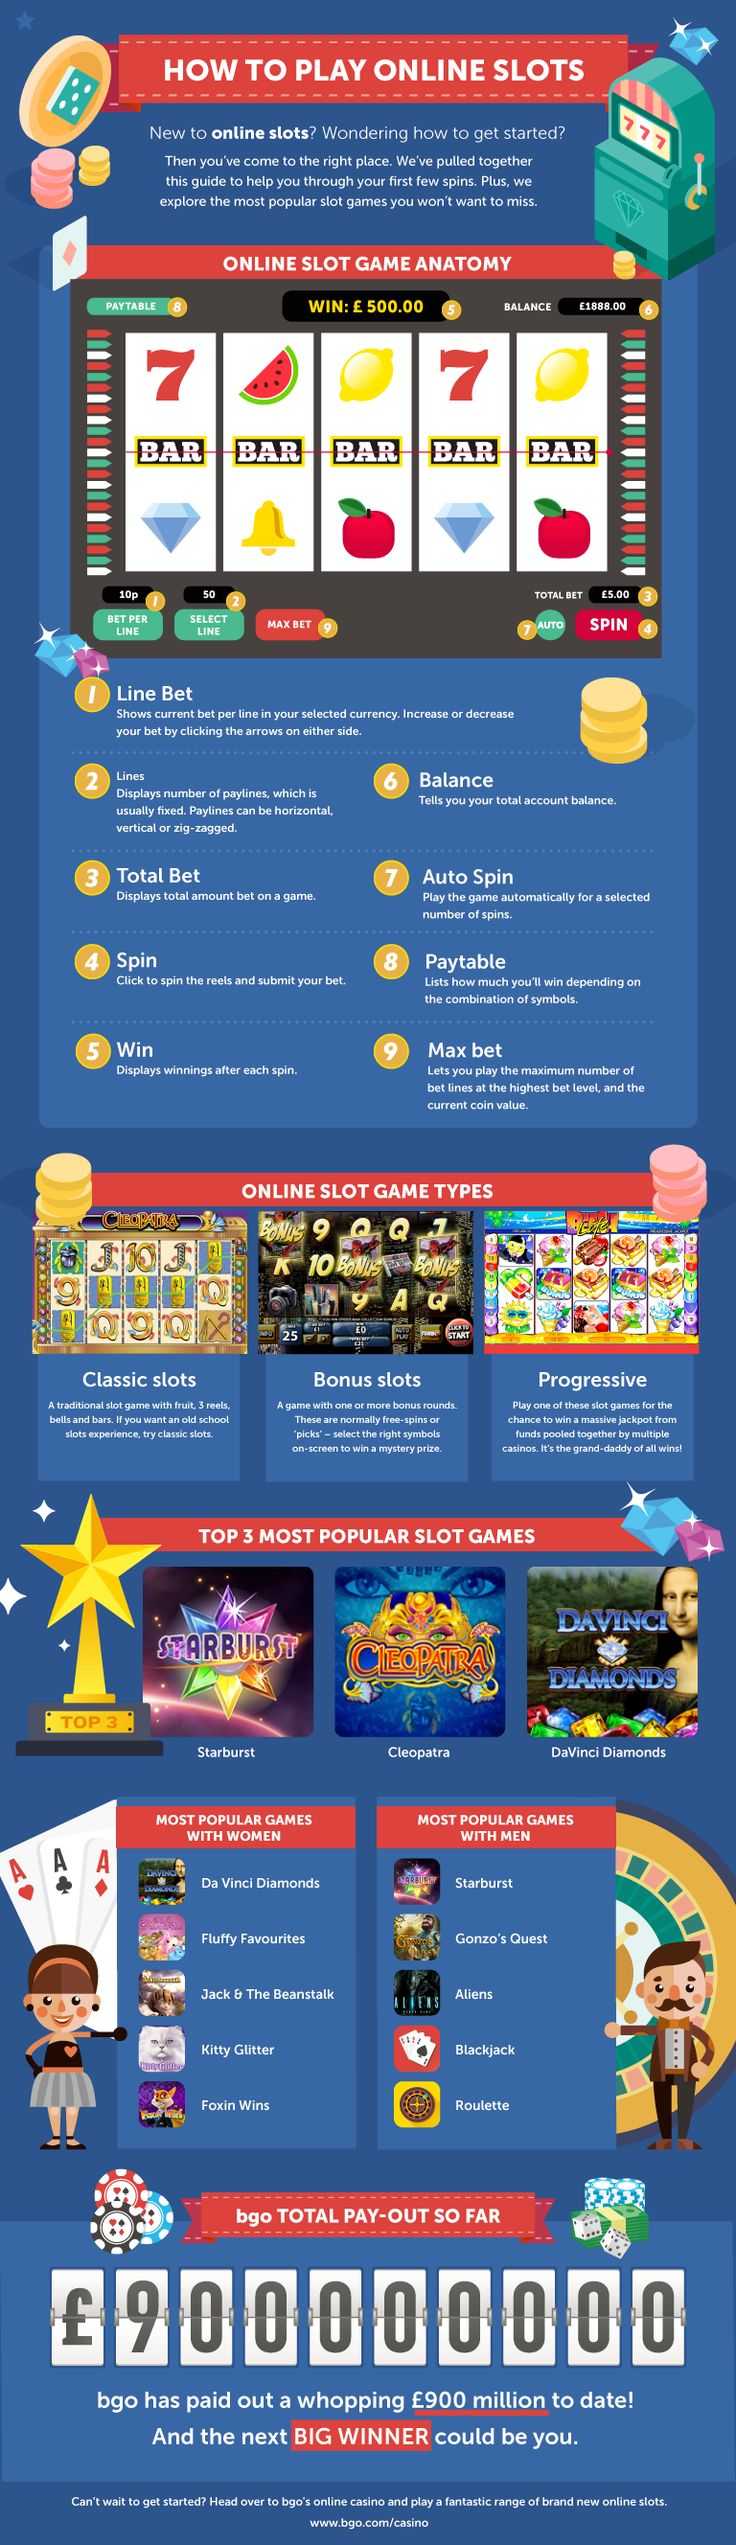 How to Play Online Slots? | Casino Infographics: